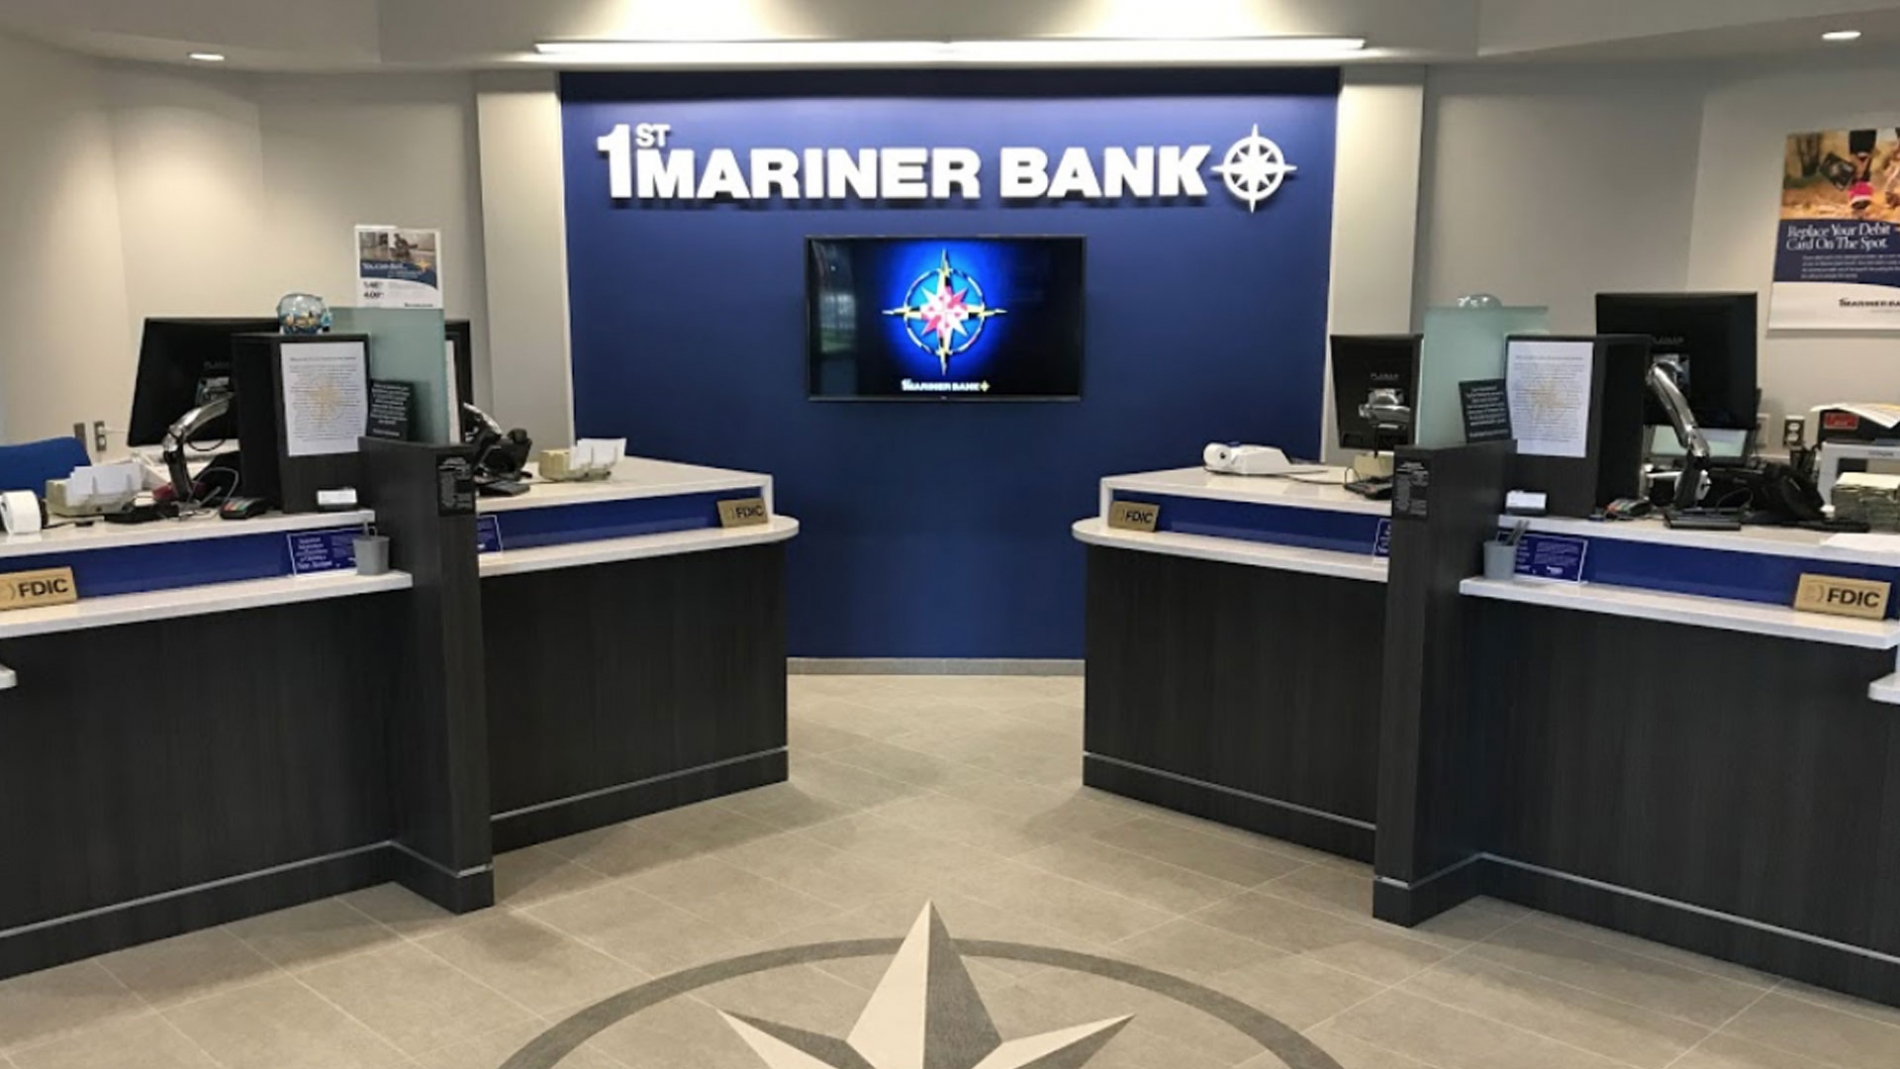 1st Mariner Bank